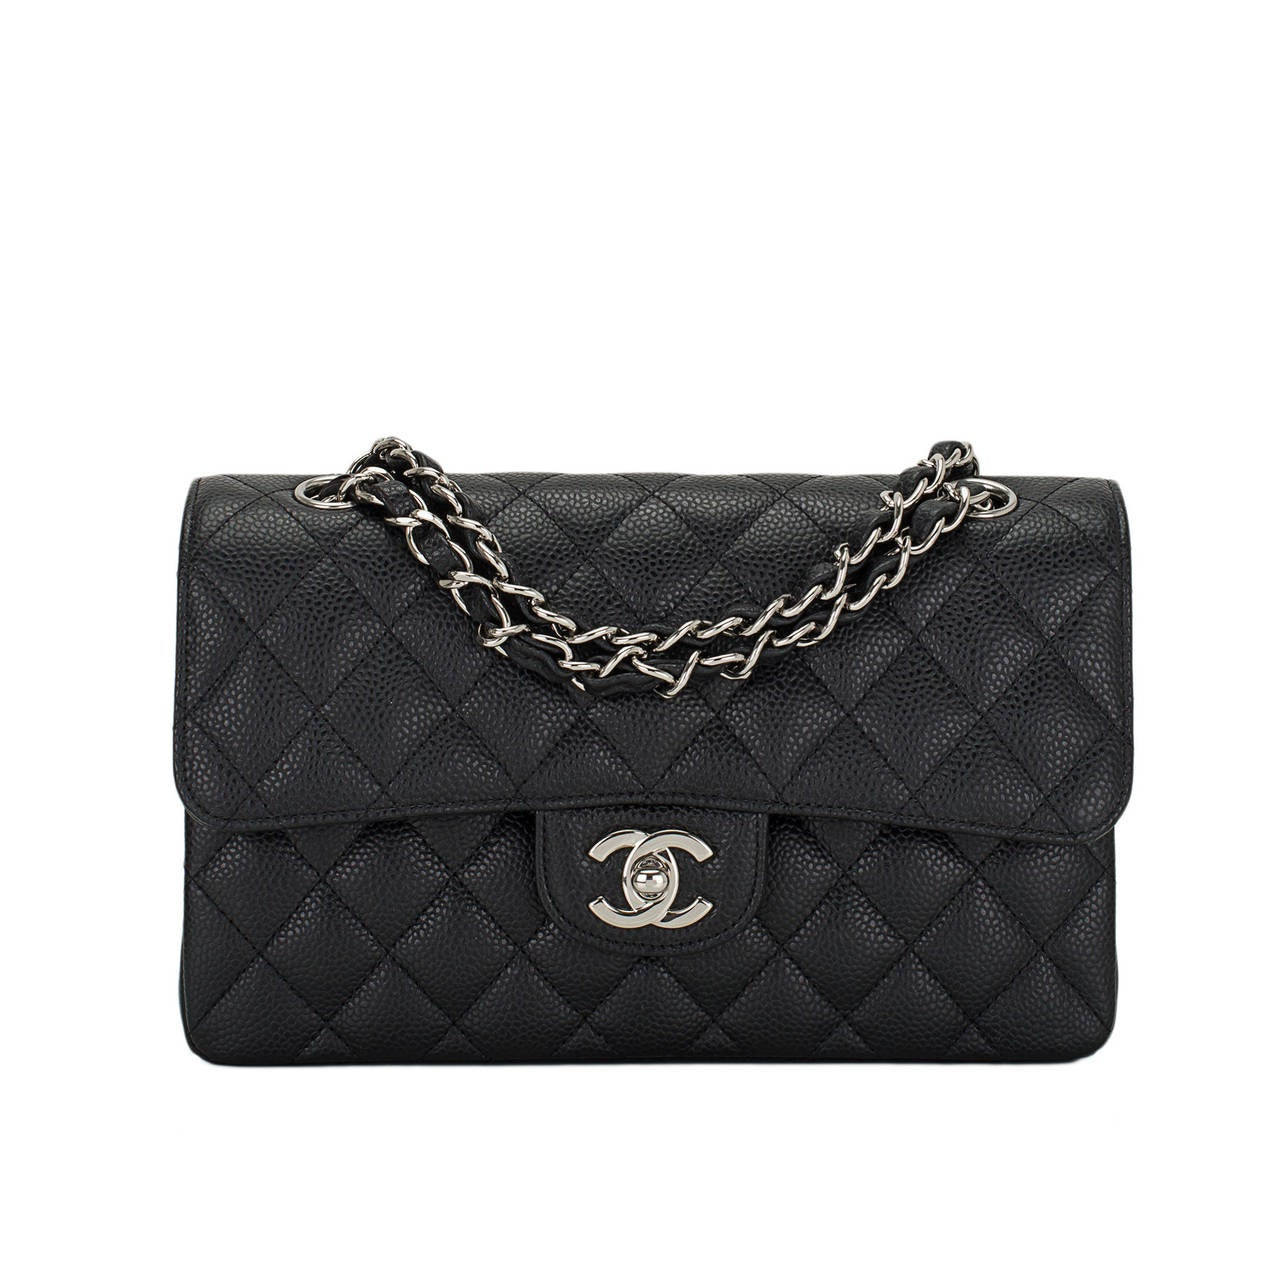 Chanel Black Quilted Caviar Small Classic Double Flap Bag For Sale